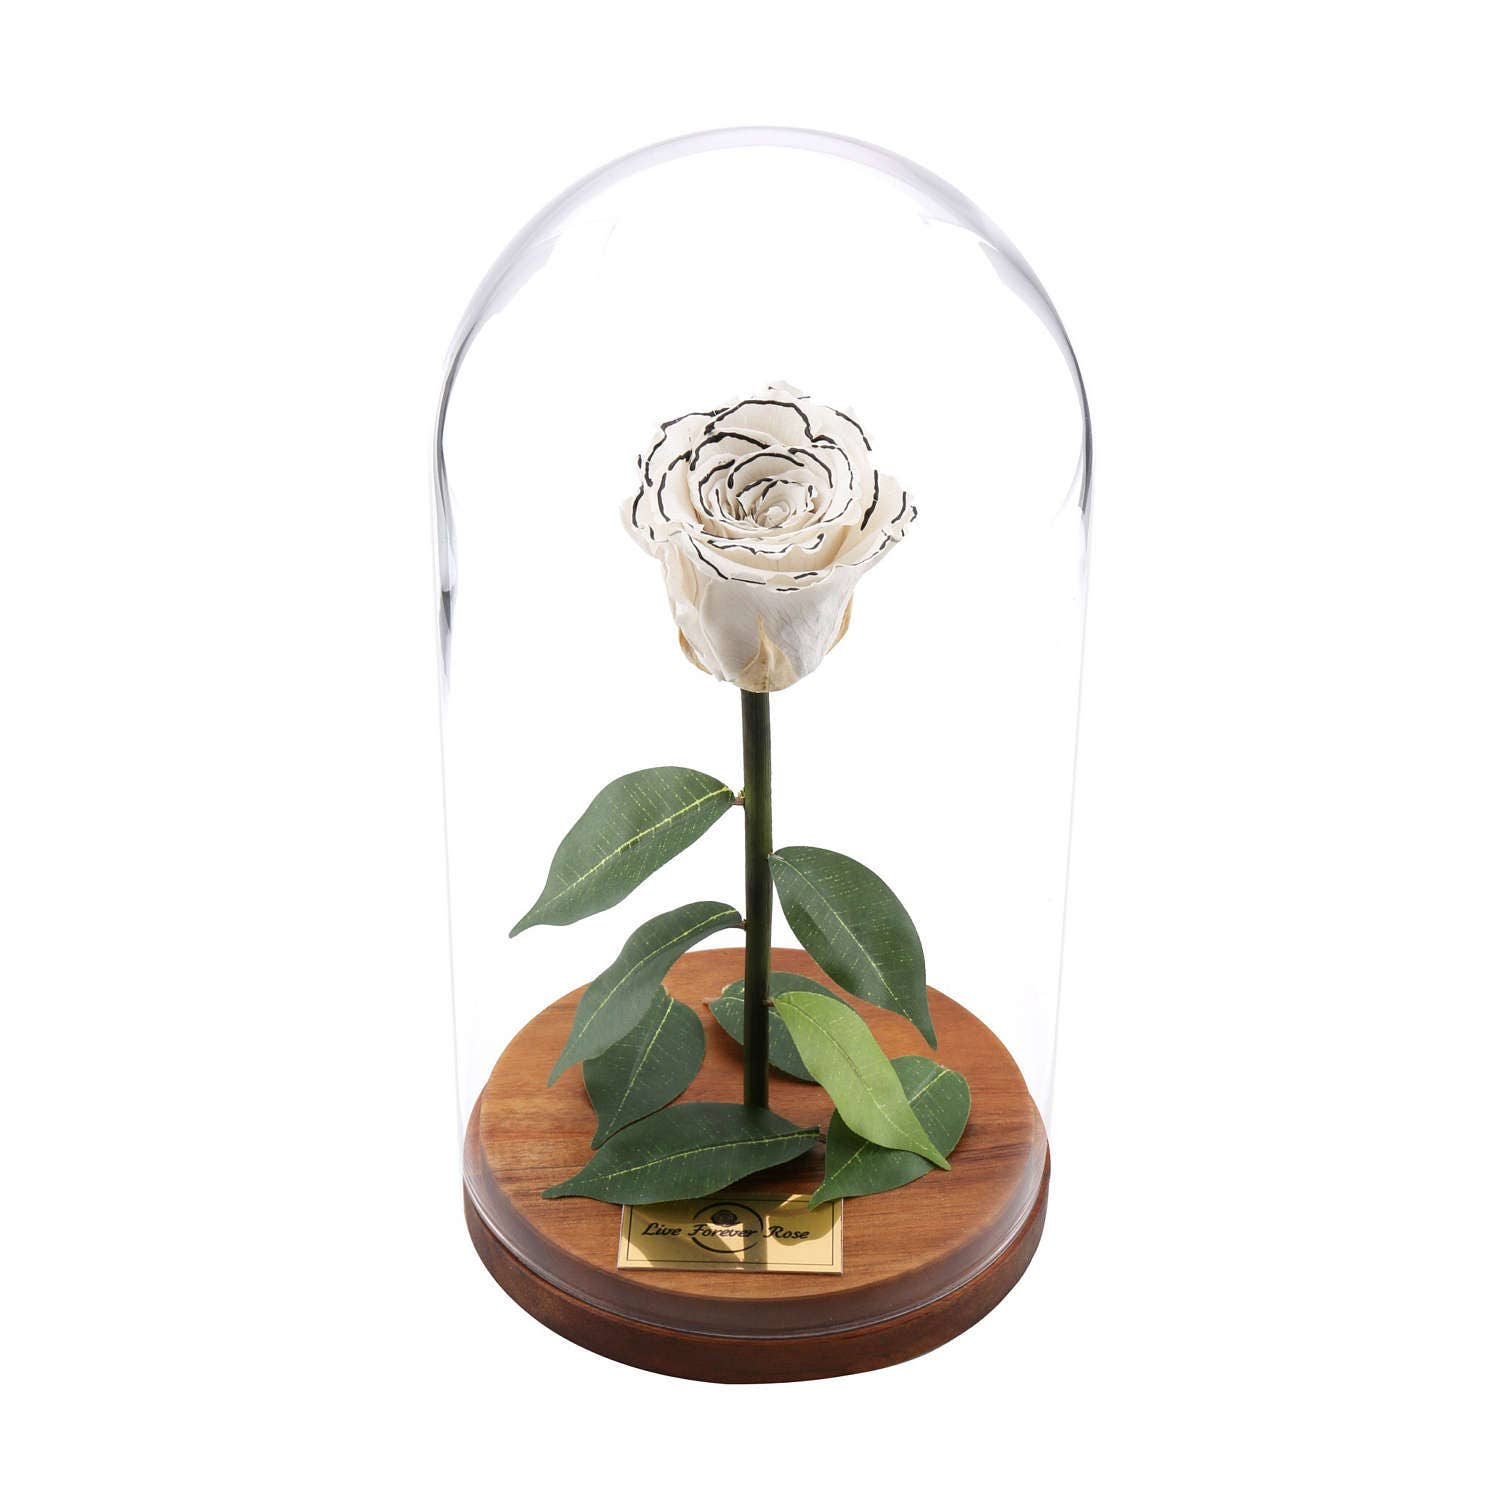 live forever rose in glass dome mothers day gift home decor etsy. Black Bedroom Furniture Sets. Home Design Ideas